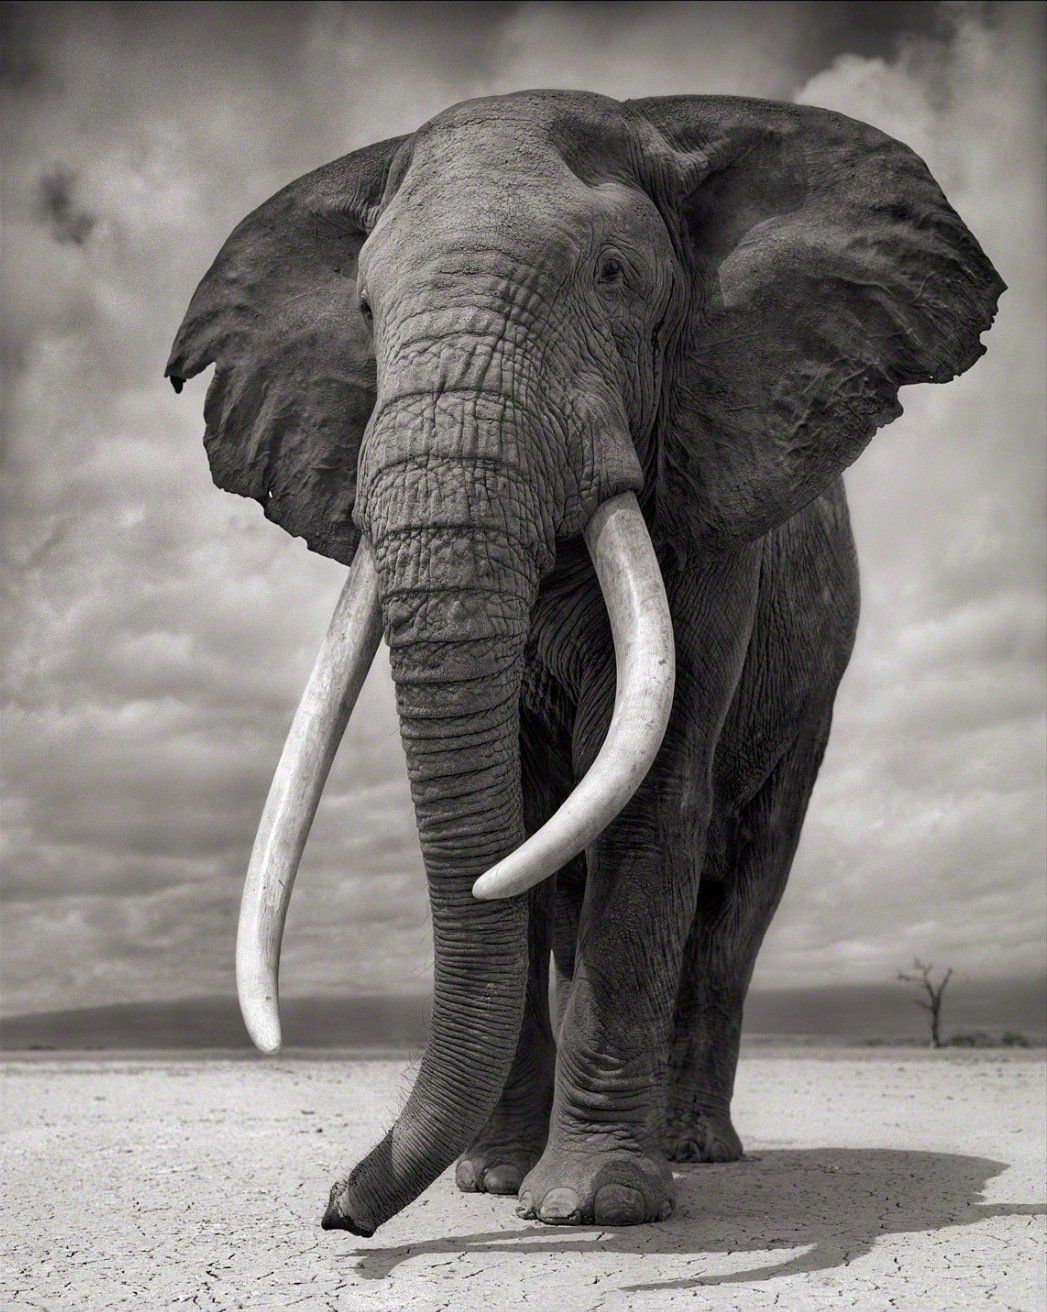 Elephant on Bare Earth, Amboseli From a unique